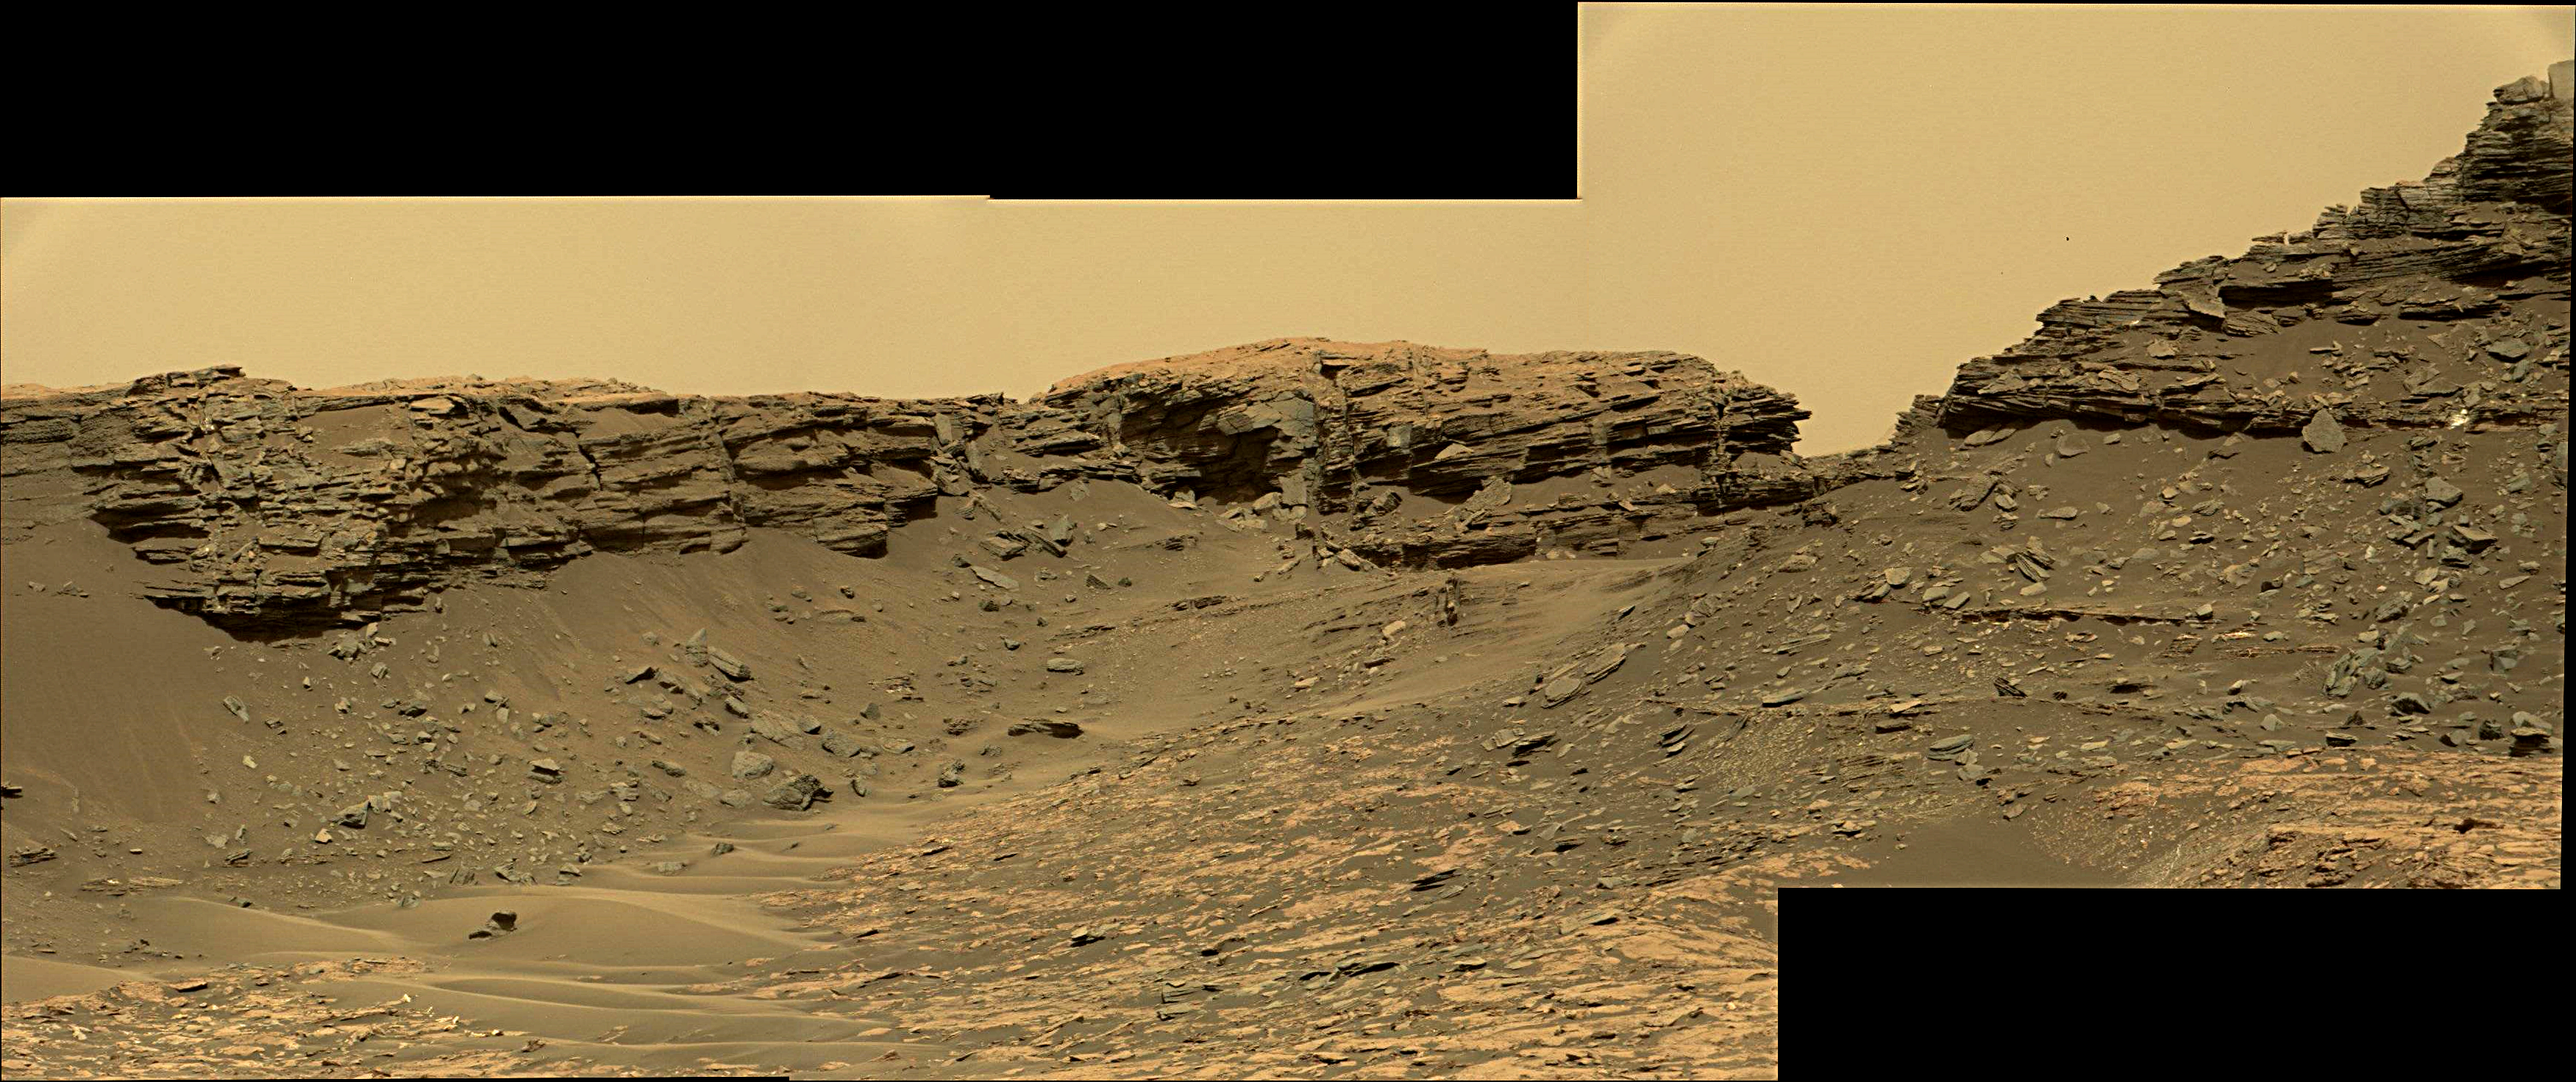 panoramic-curiosity-rover-view-2-3-sol-1454-was-life-on-mars